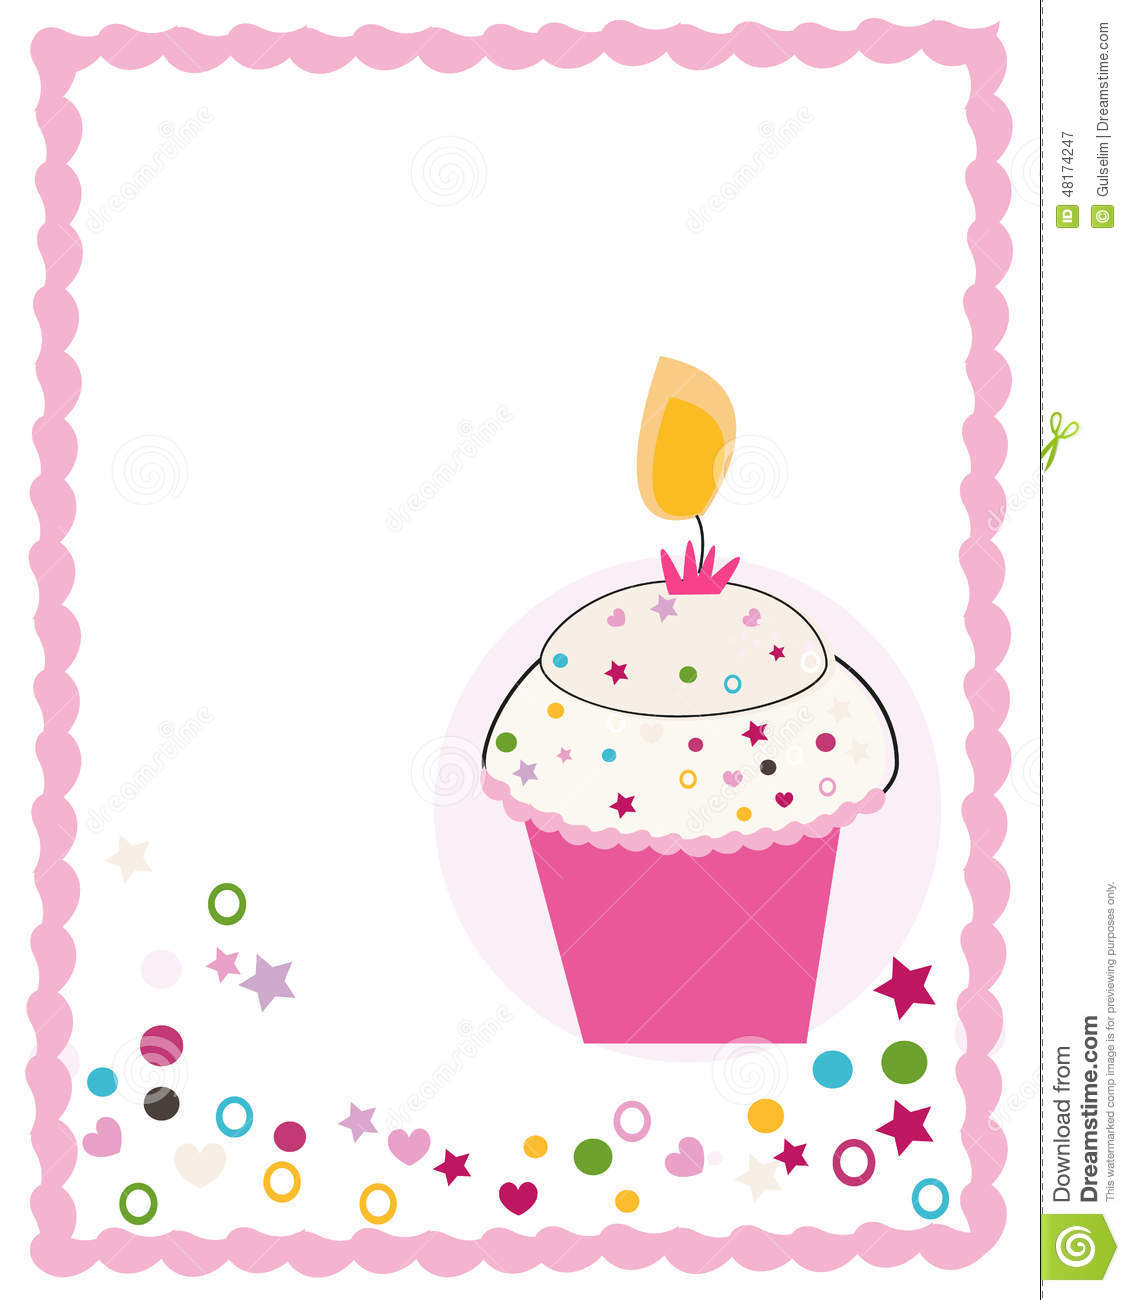 Happy birthday greeting card with cupcake and candle stock vector happy birthday greeting card with cupcake and candle kristyandbryce Image collections